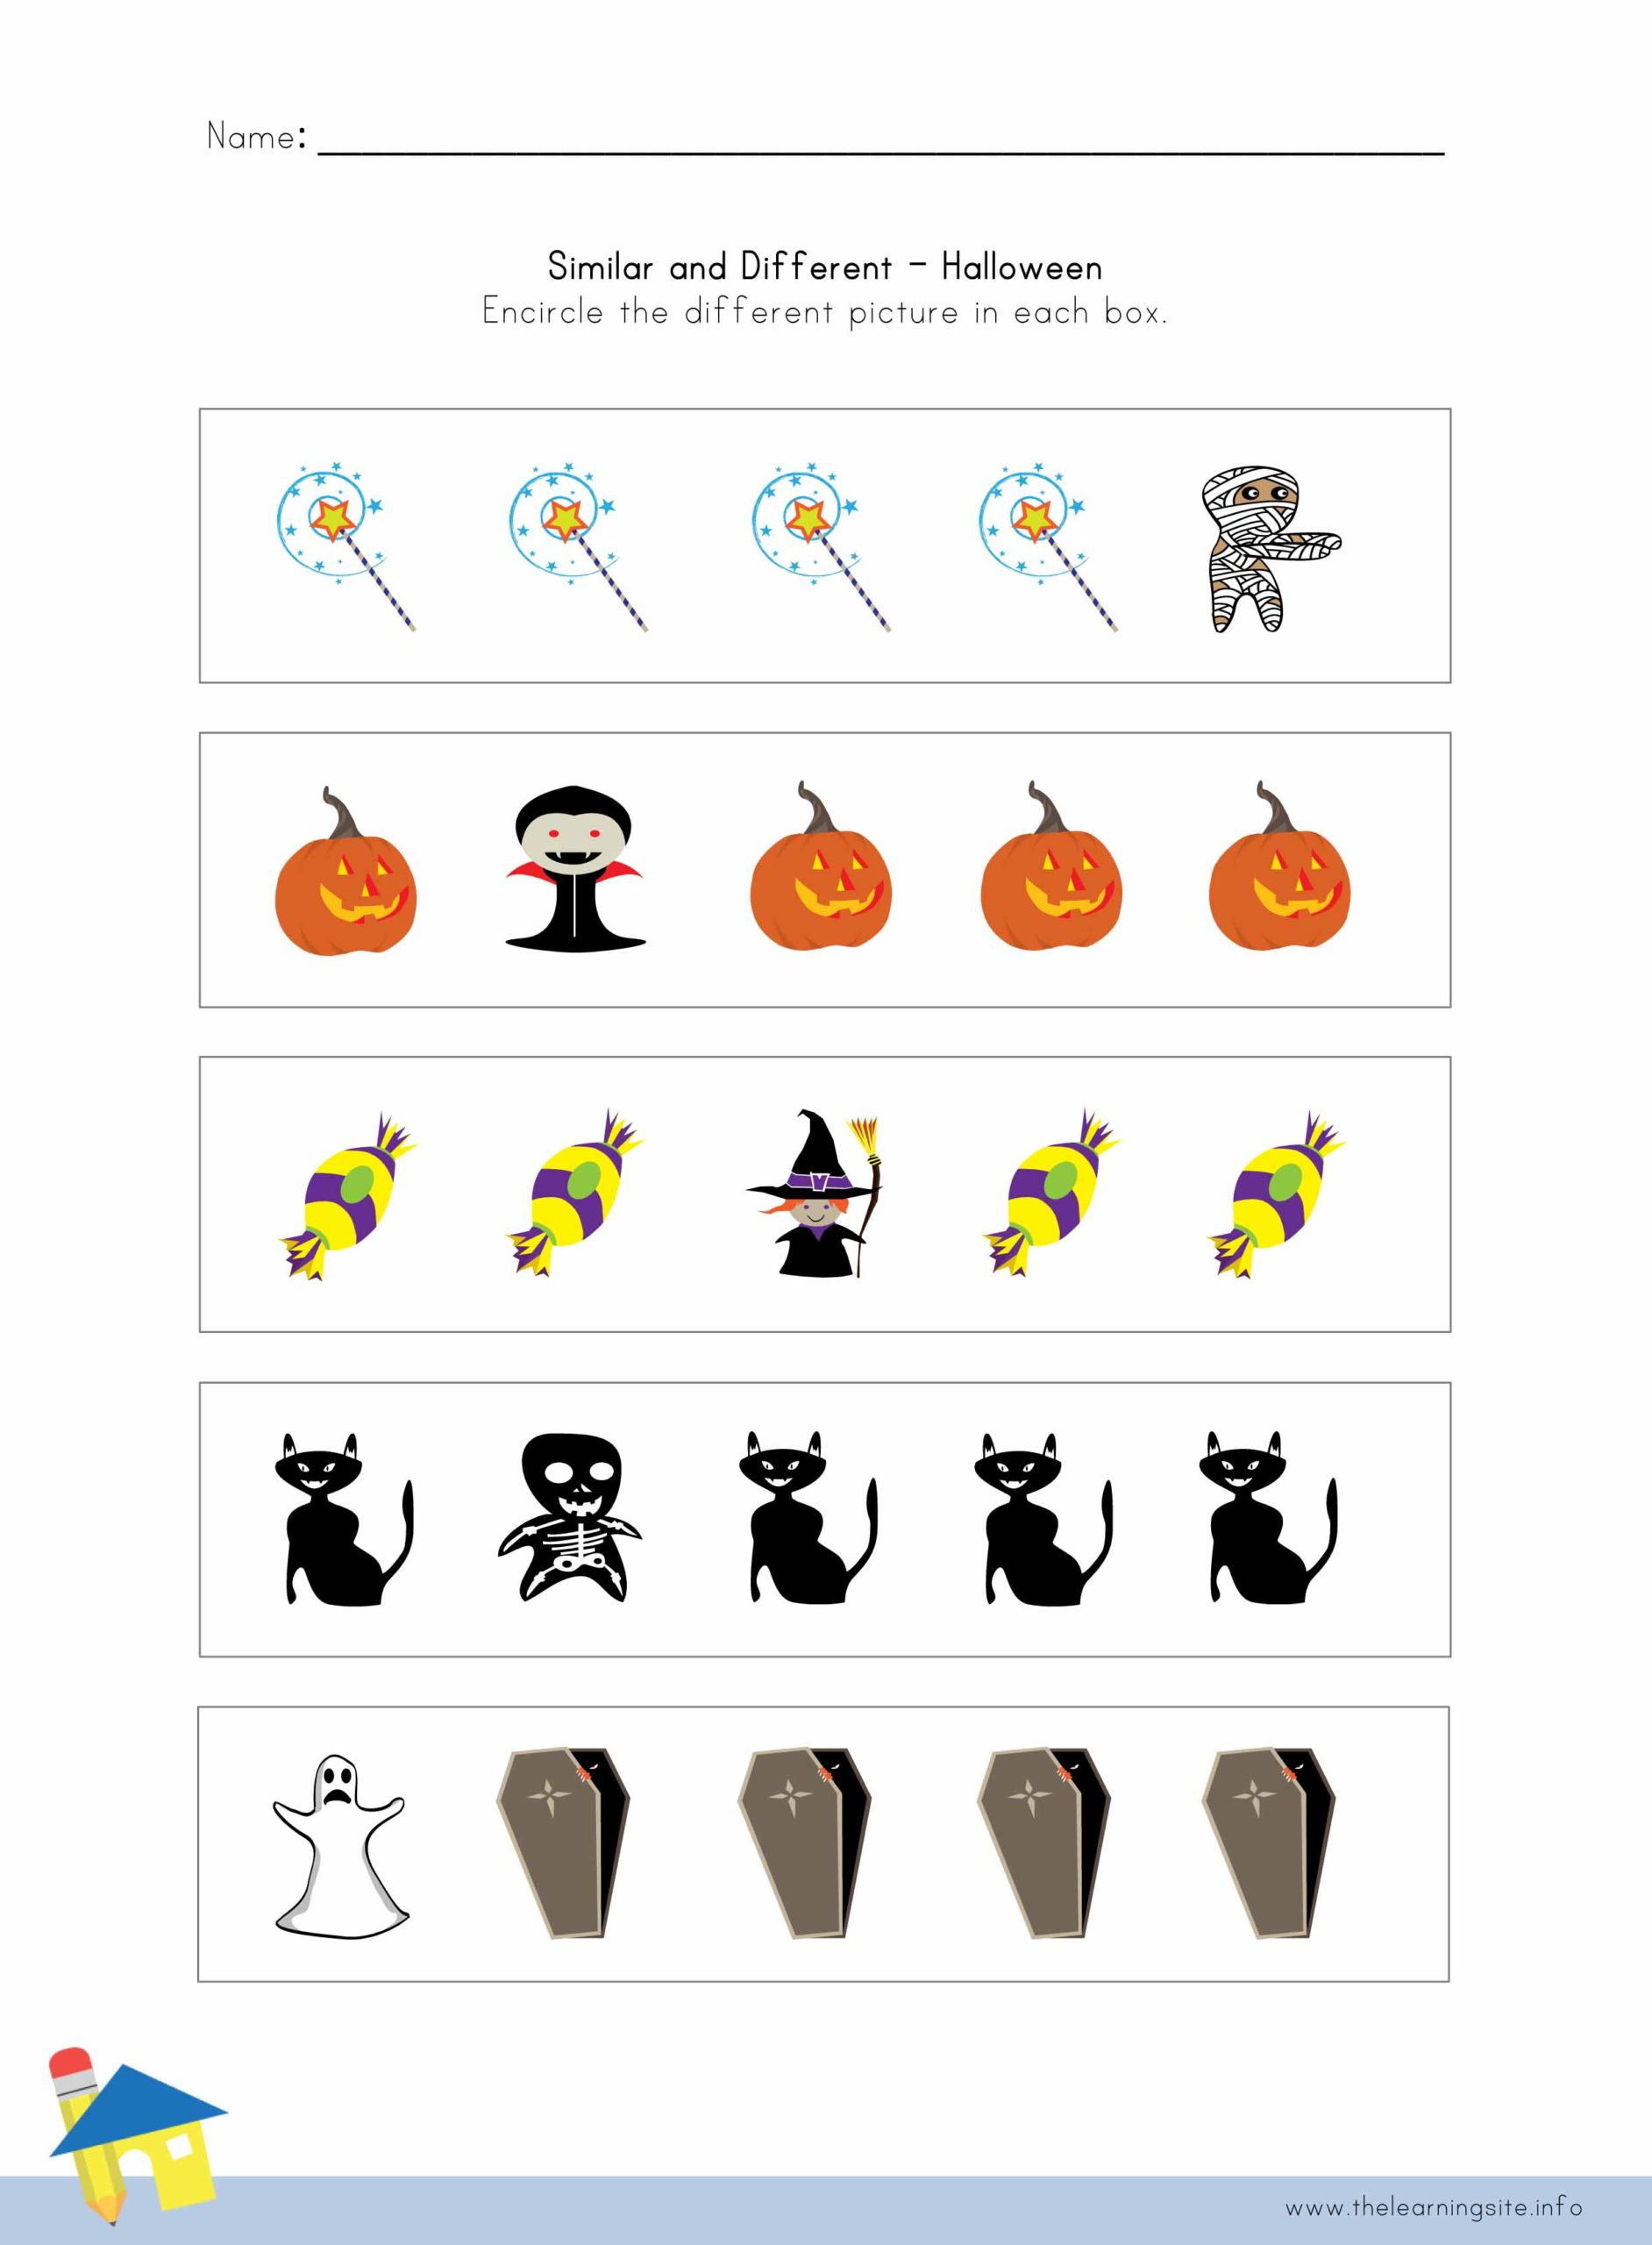 Halloween Similar And Different Worksheet 1 The Learning